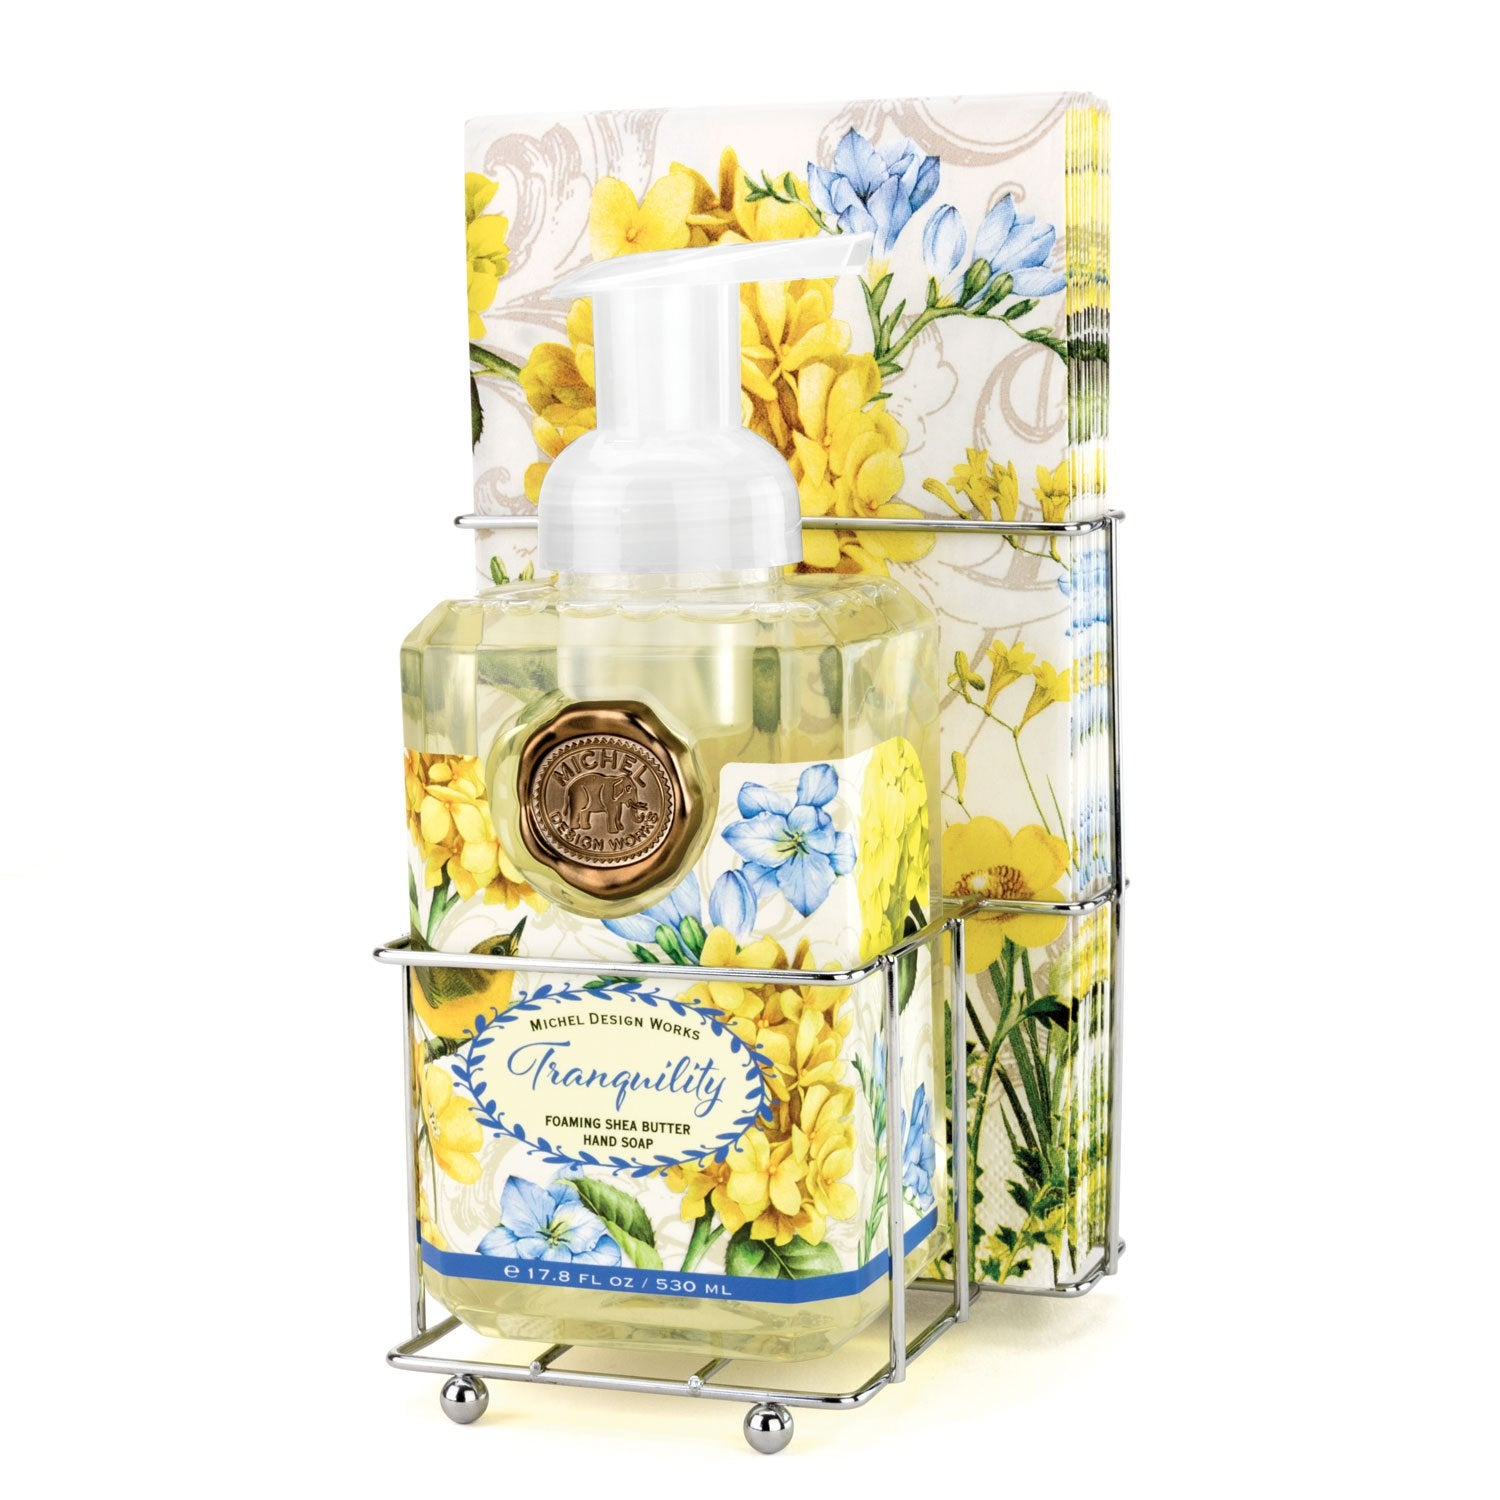 Tranquility Foaming Hand Soap Napkin Set